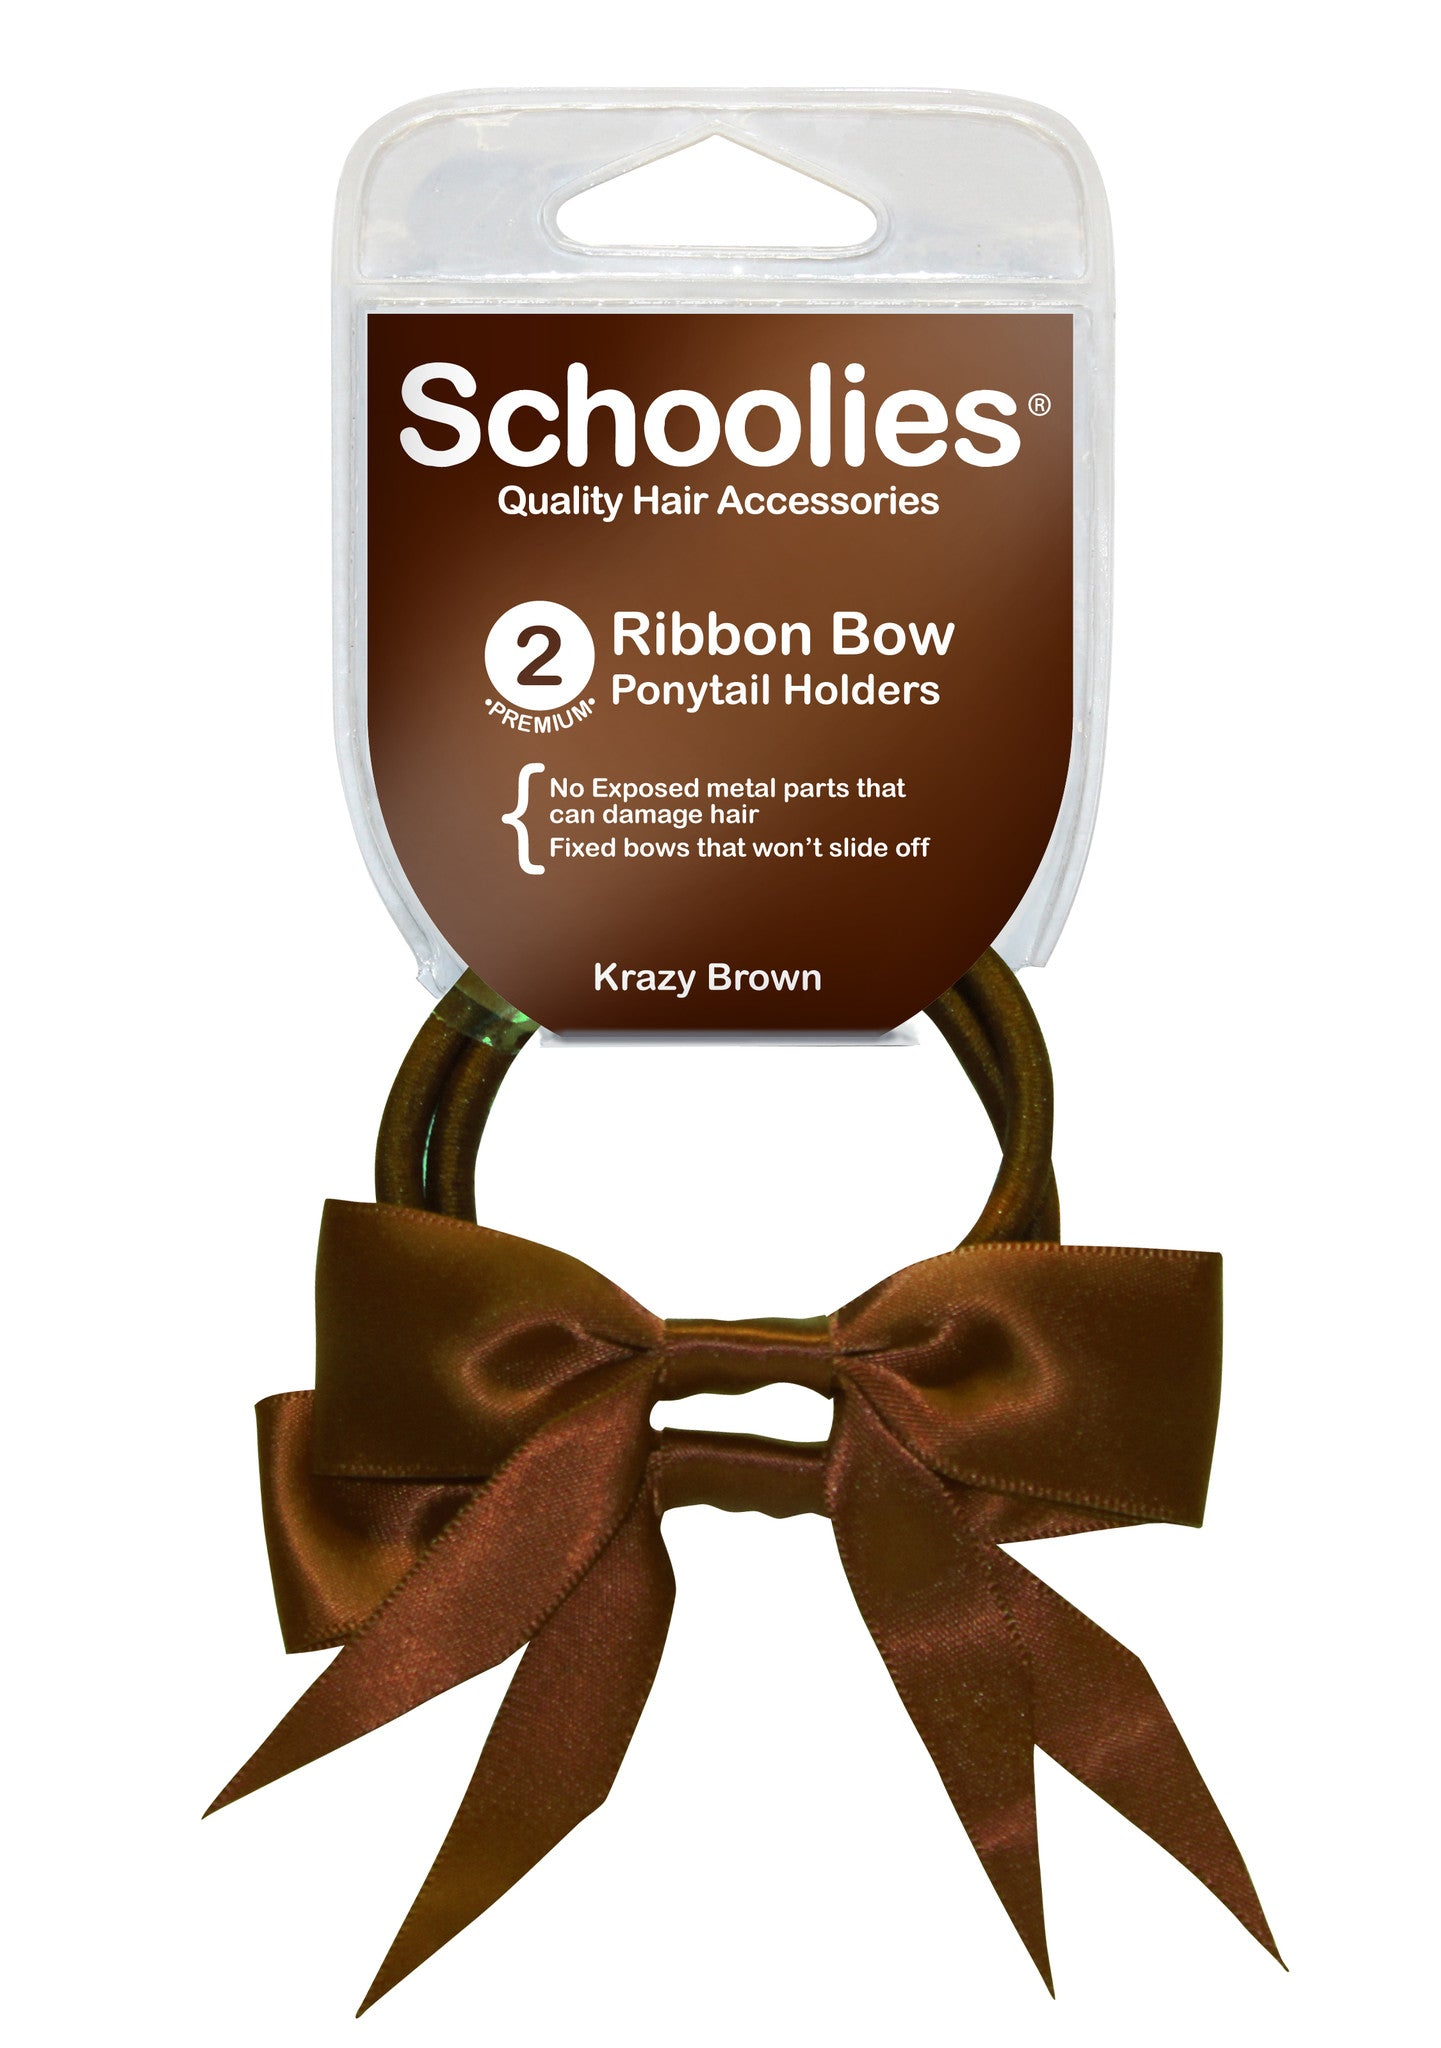 Schoolies Ribbon Bows 2pc Krazy Brown Chemcorp